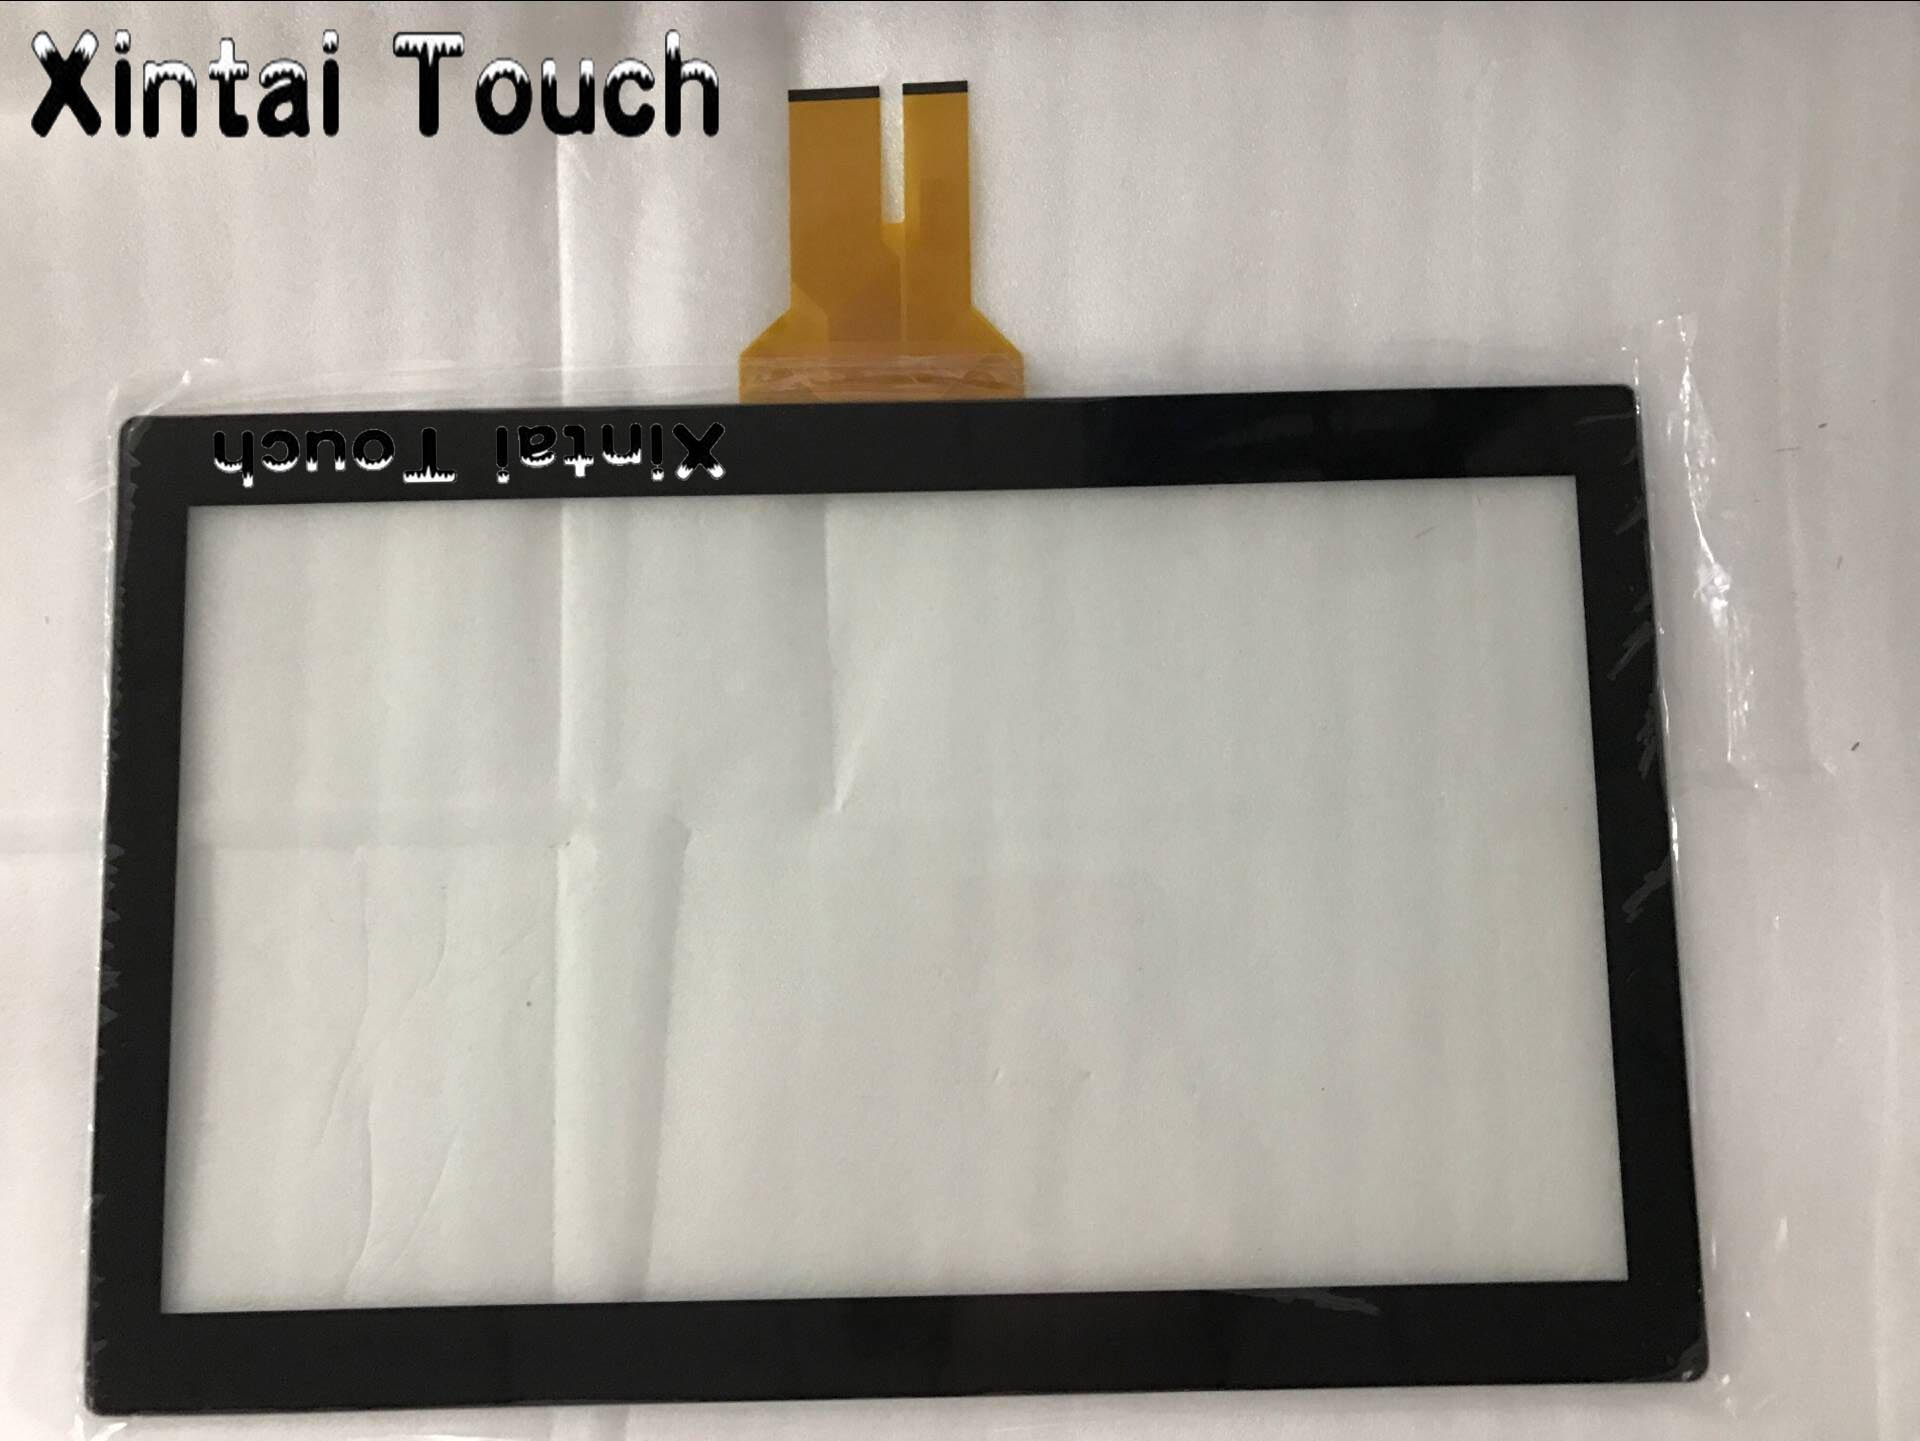 15.6 Inch 10 Points Capacitive Multi Touch Screen Overlay/ Multi-Touch Screen Panel Kit for LCD Monitor with EETI controller free shipping 20 multi ir touch frame 2 points infrared touch screen overlay kit for kiosk